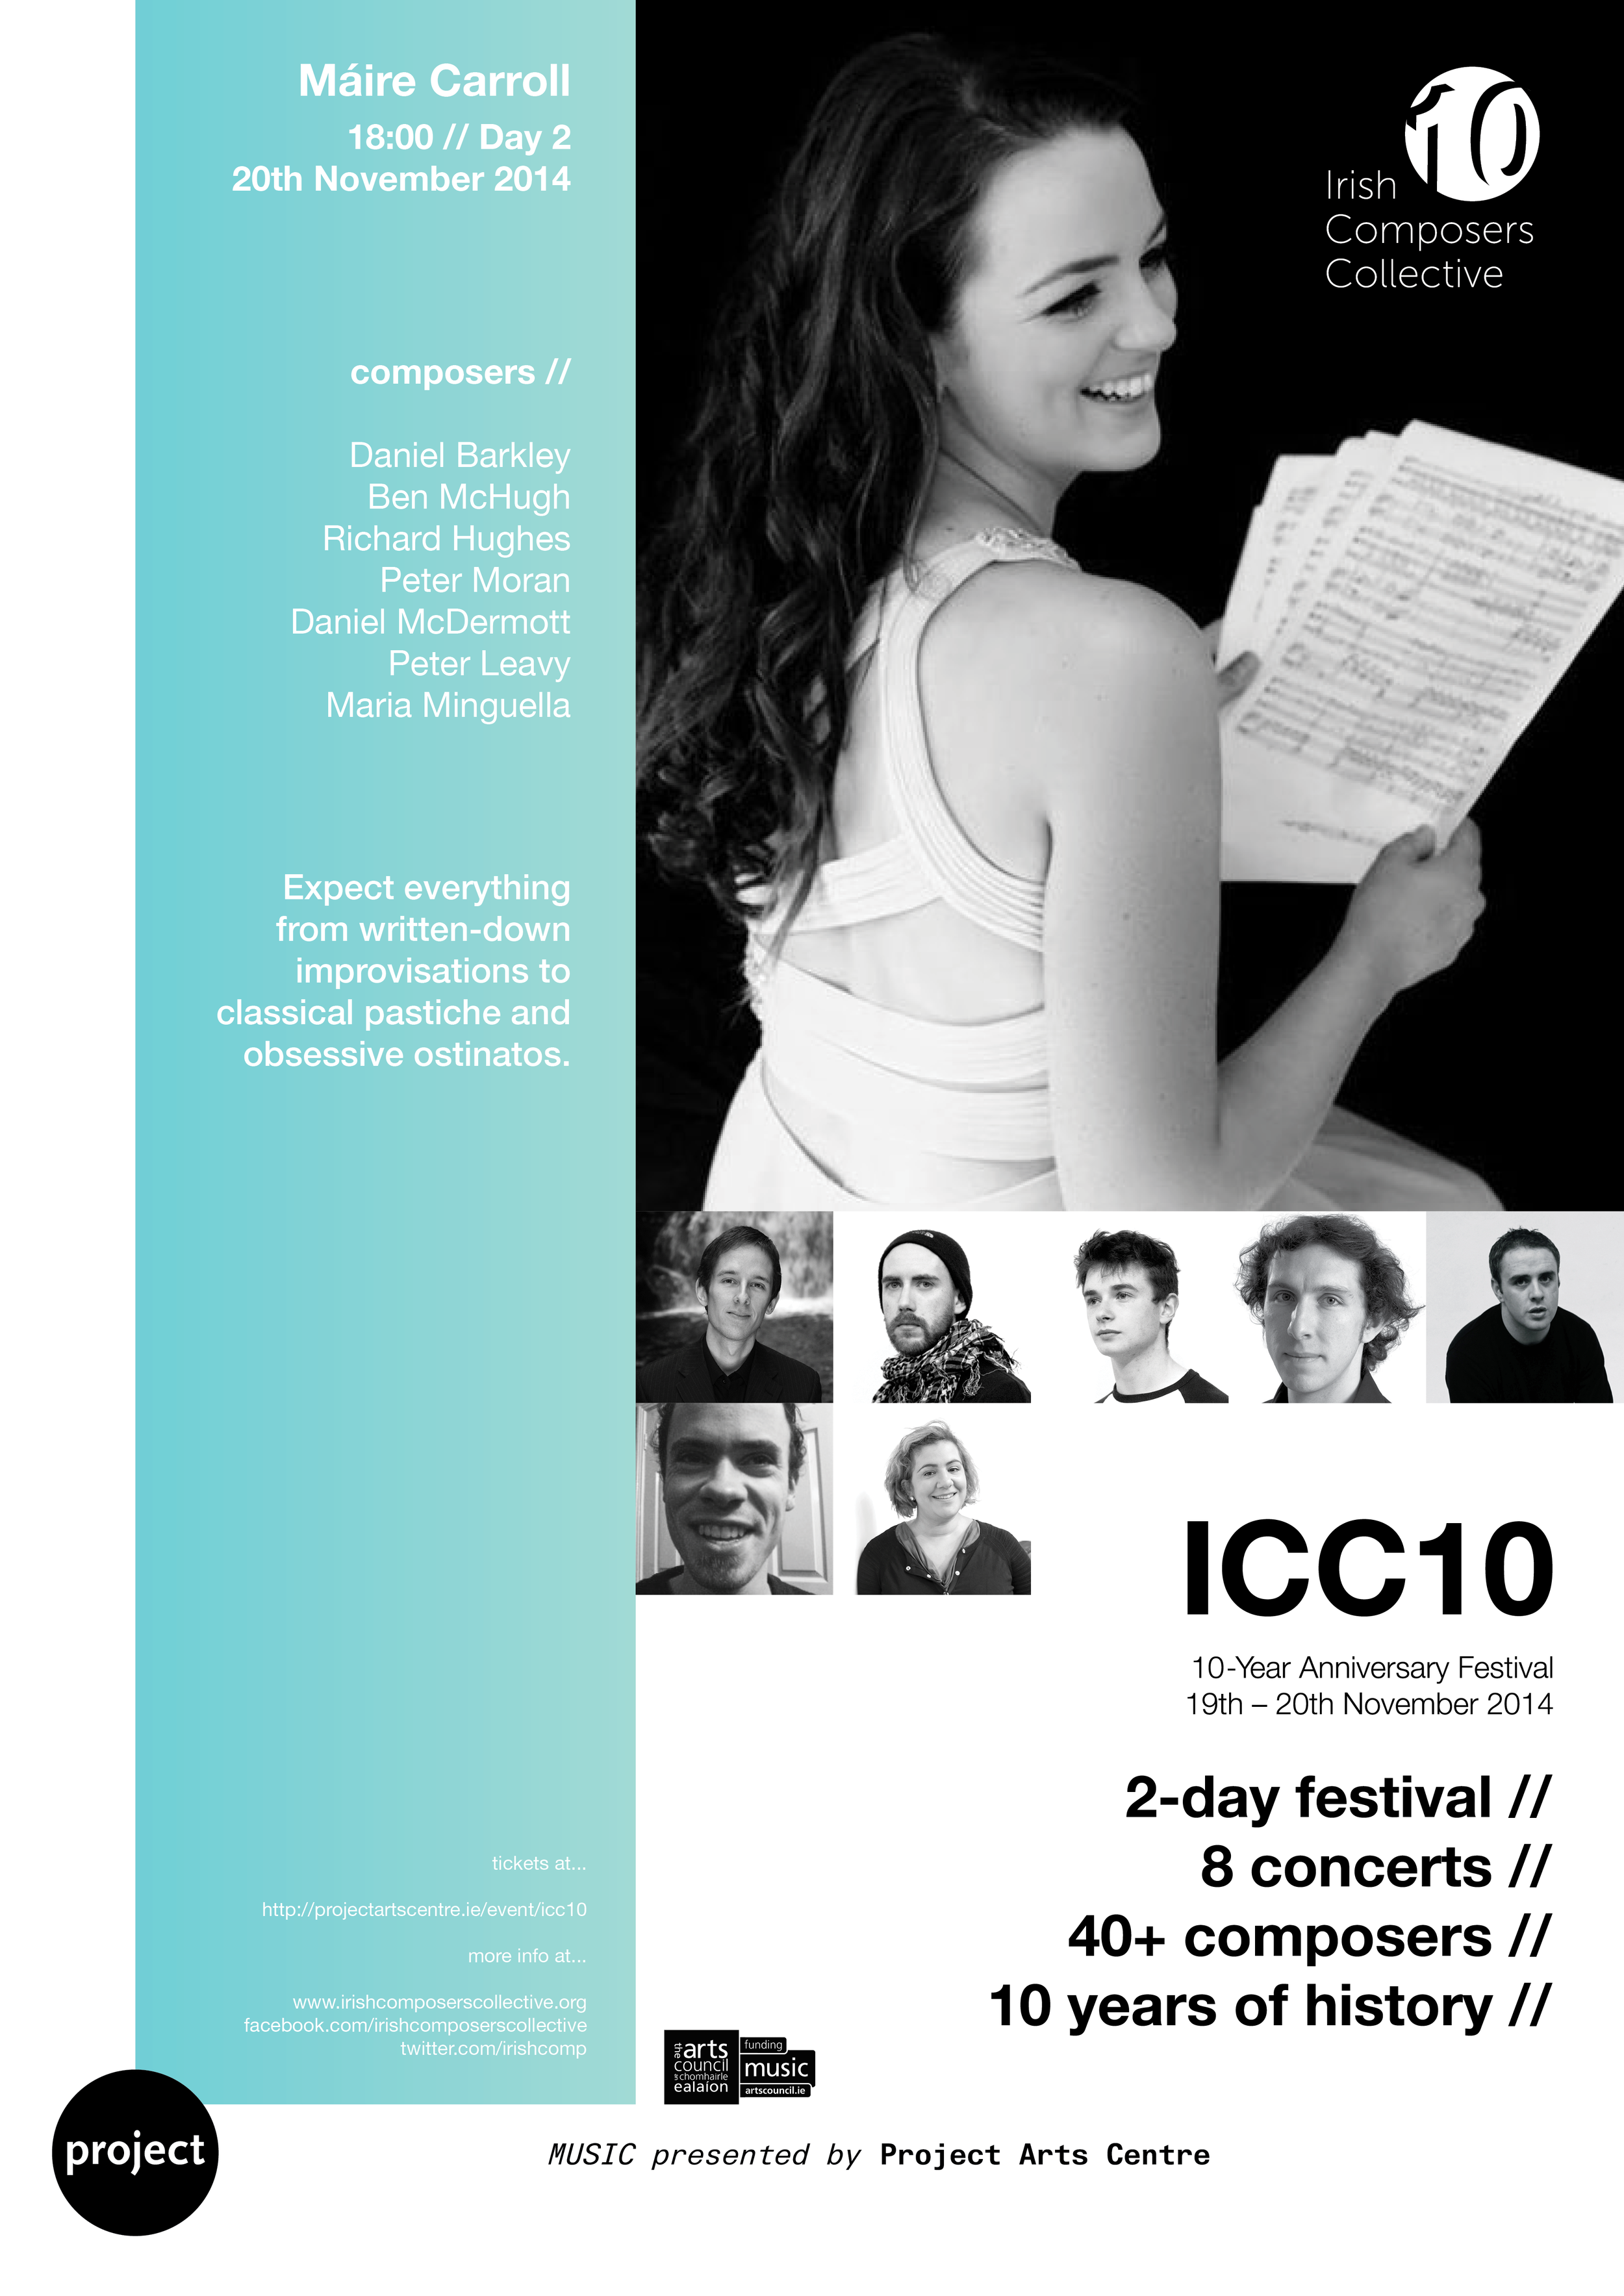 icc10 a3 poster_Maire.png